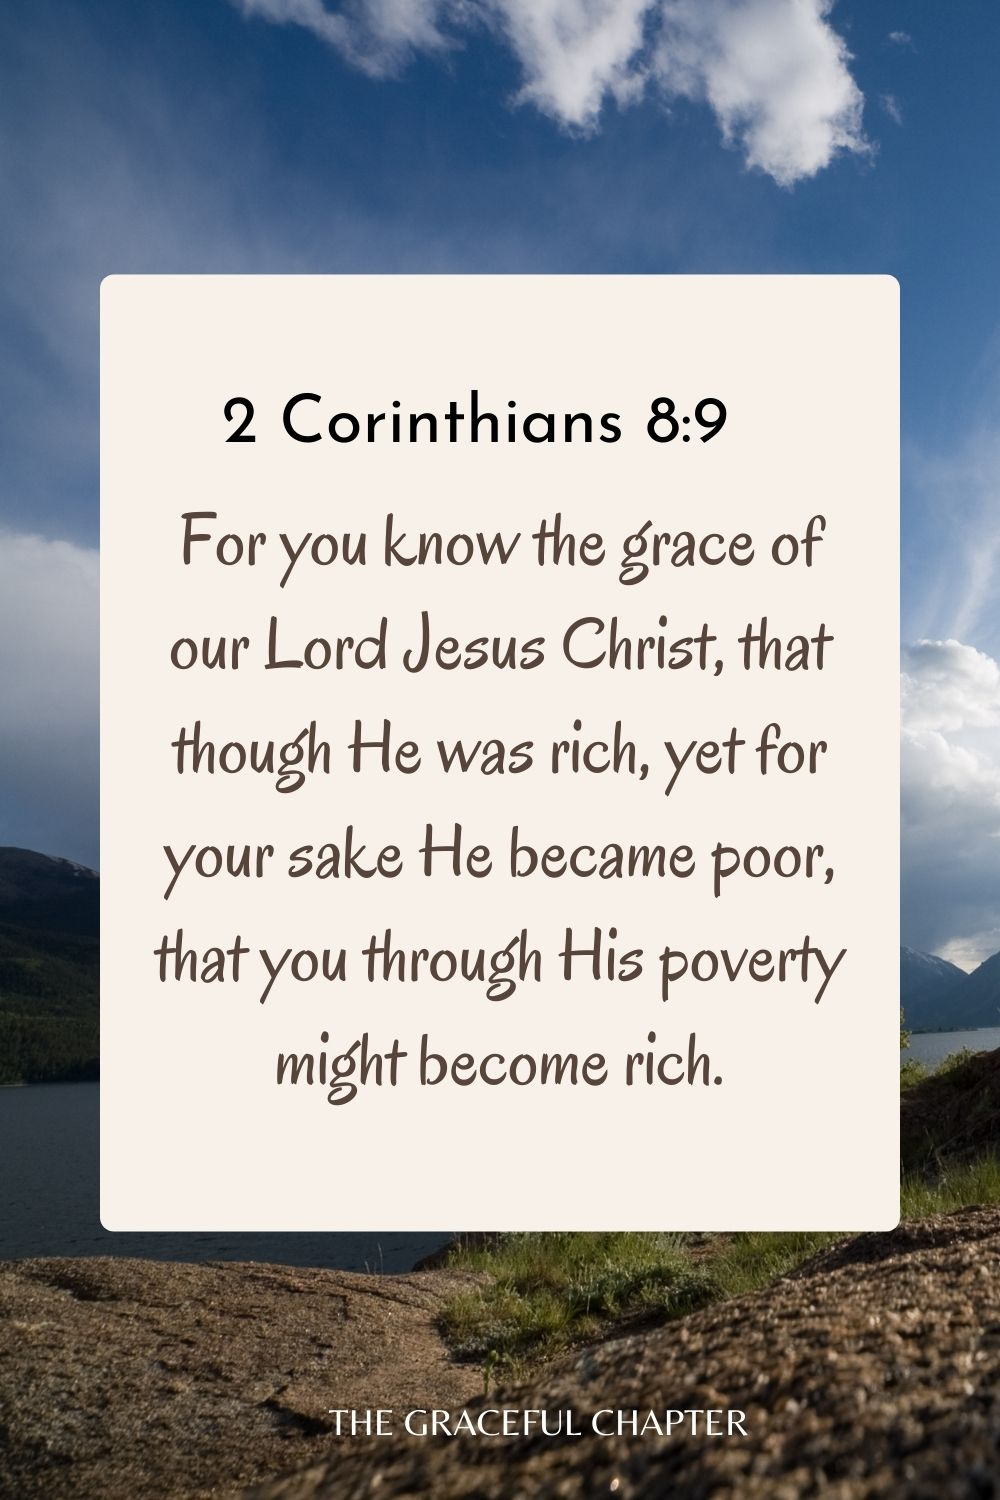 For you know the grace of our Lord Jesus Christ, that though He was rich, yet for your sake He became poor, that you through His poverty might become rich. 2 Corinthians 8:9